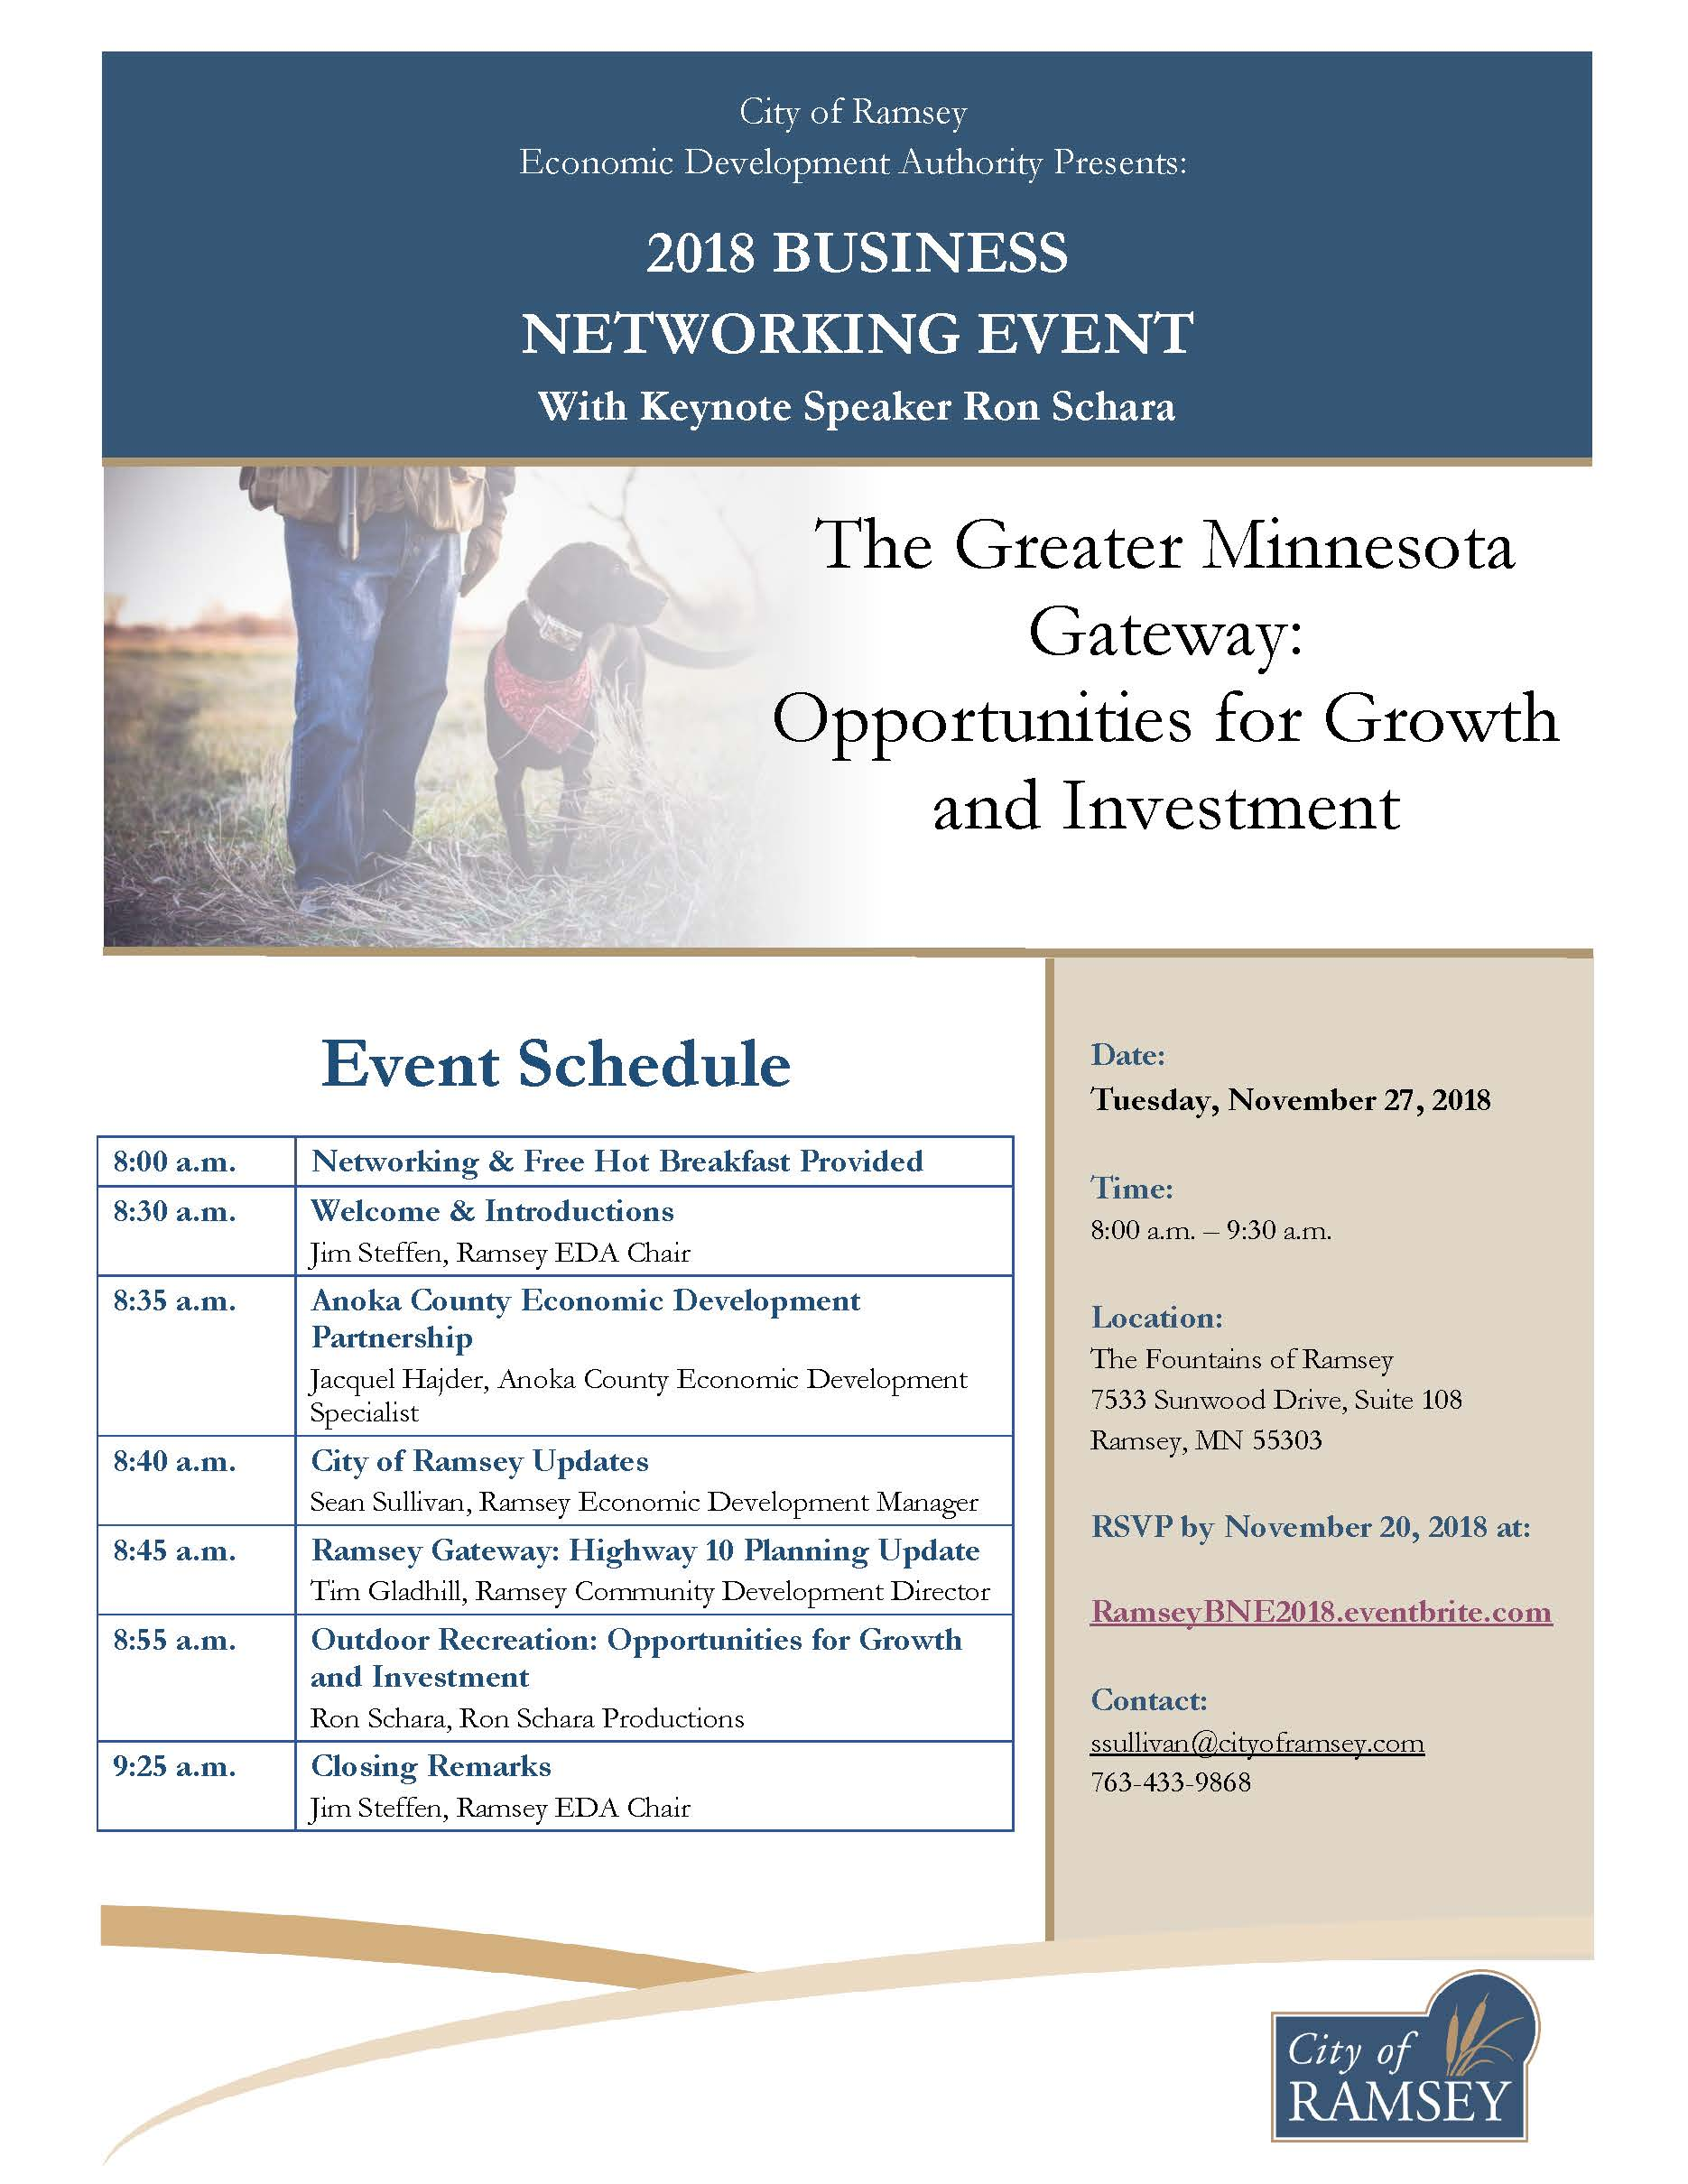 2018 EDA Business Networking Event Flyer and Program